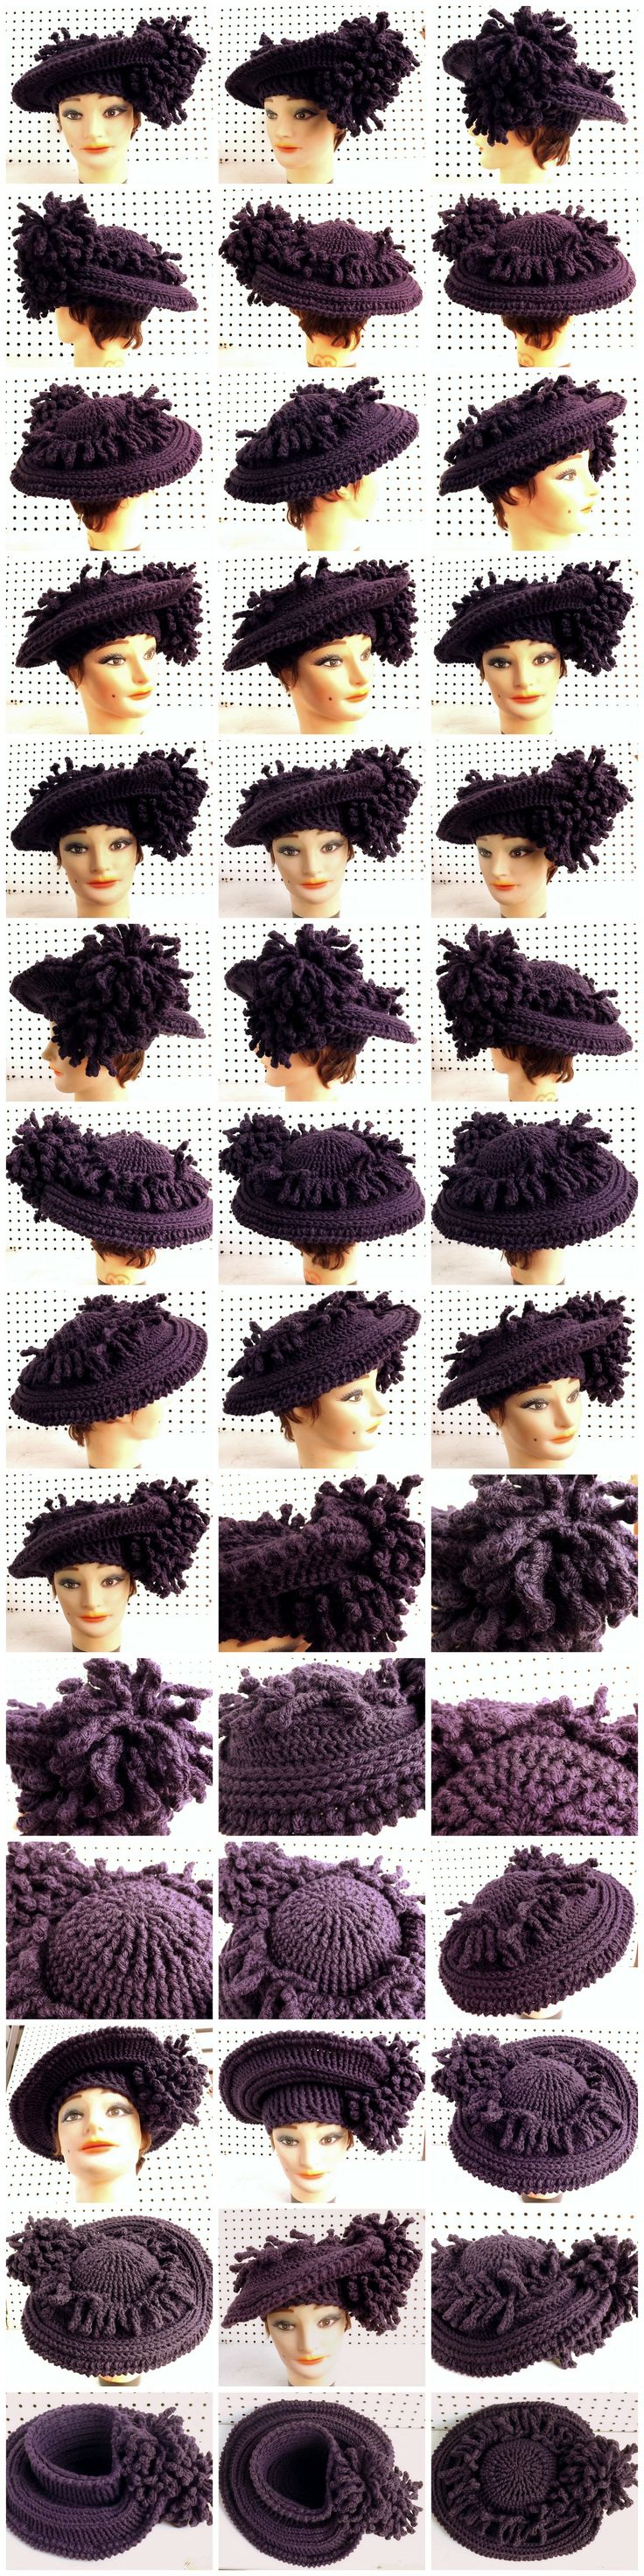 DERBY Crochet Wide Brim Hat in Purple - either a doll's hat or uses very thick yarn - link says no longer available